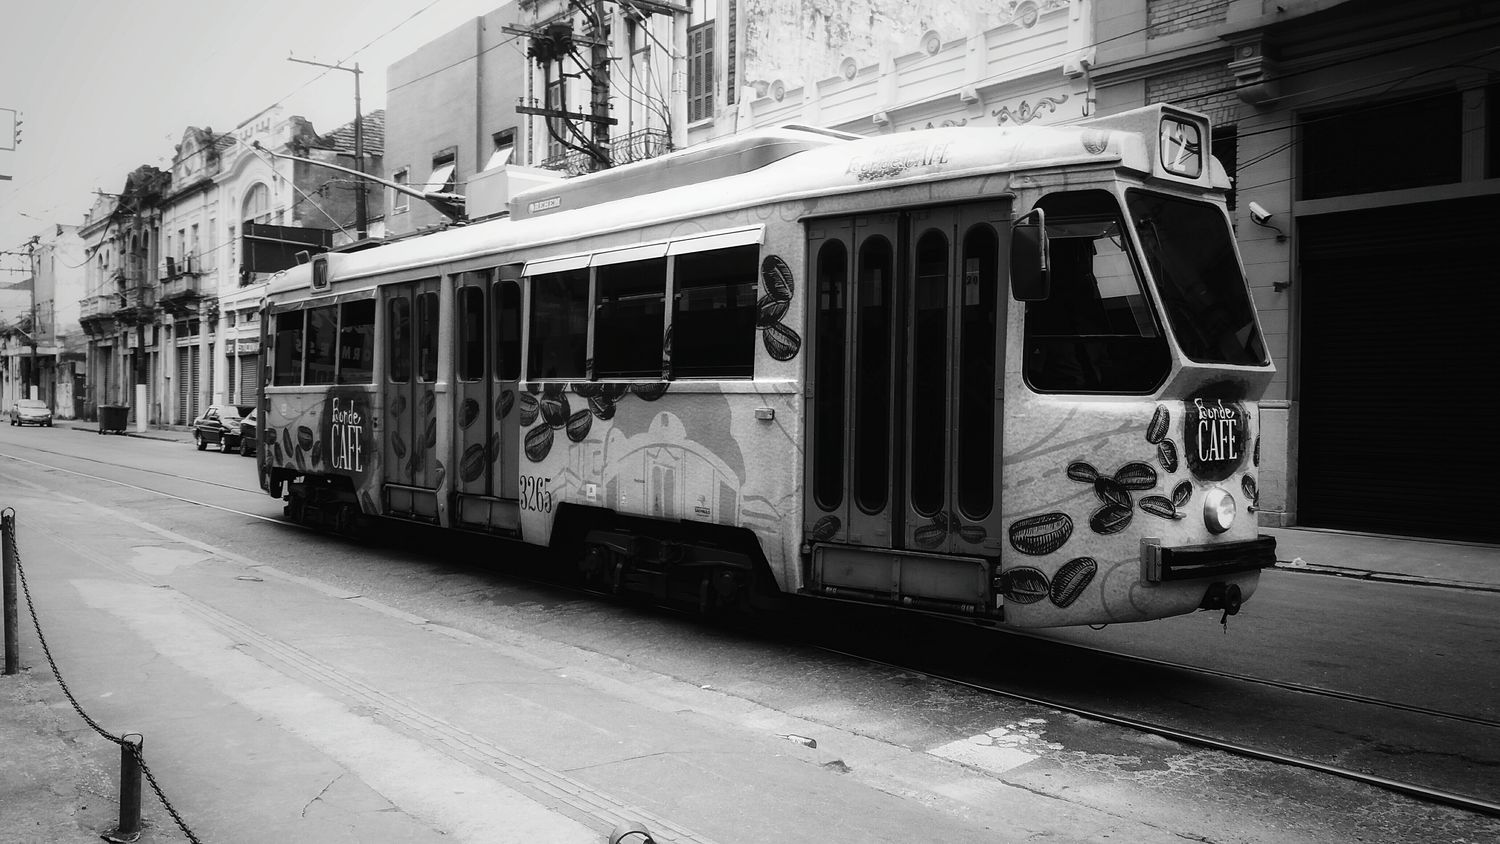 Tram Public Transportation Mode Of Transport Black And White Photography Walking Around The City  Monochrome _ Collection Bnw_friday_eyeemchallenge Darkness And Light Monochrome Photography B&w Photography Bnw_collection Blackandwhite Photography City Black And White Collection  Antiquecollection Old Buildings Old Center Transportation Streetphoto_bw Streetphotography